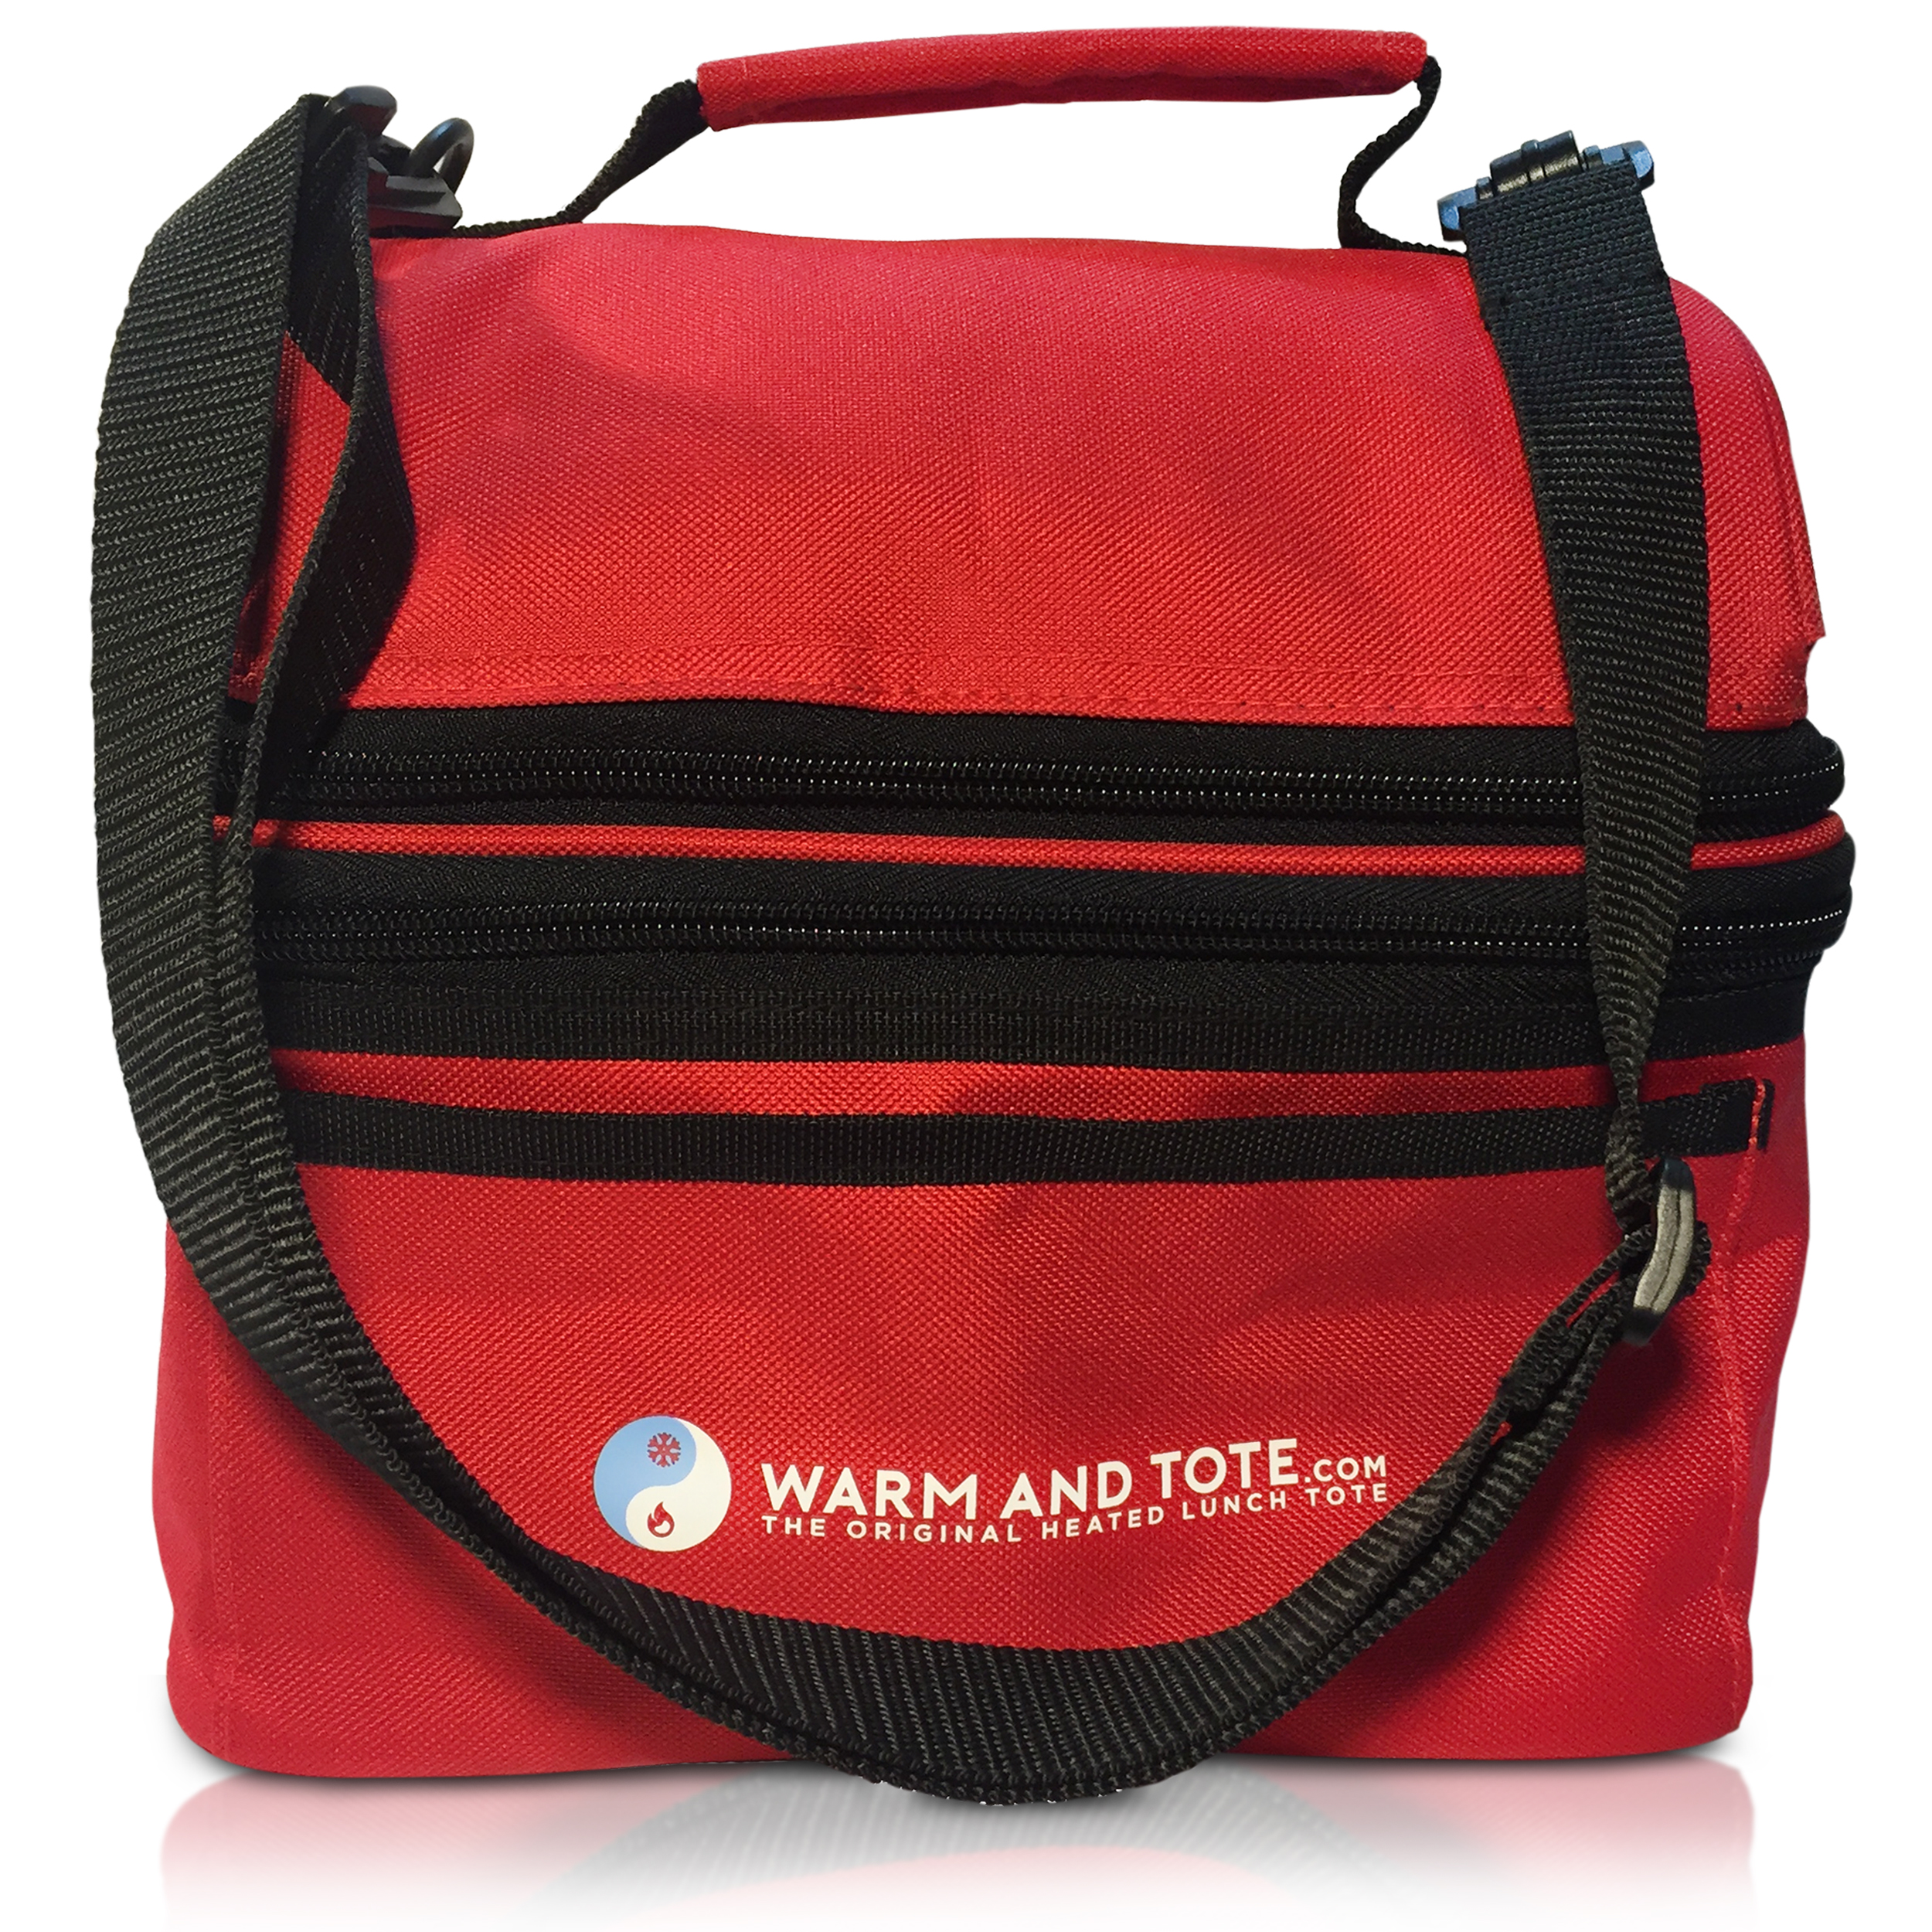 Shop Here For Heated Lunch Totes